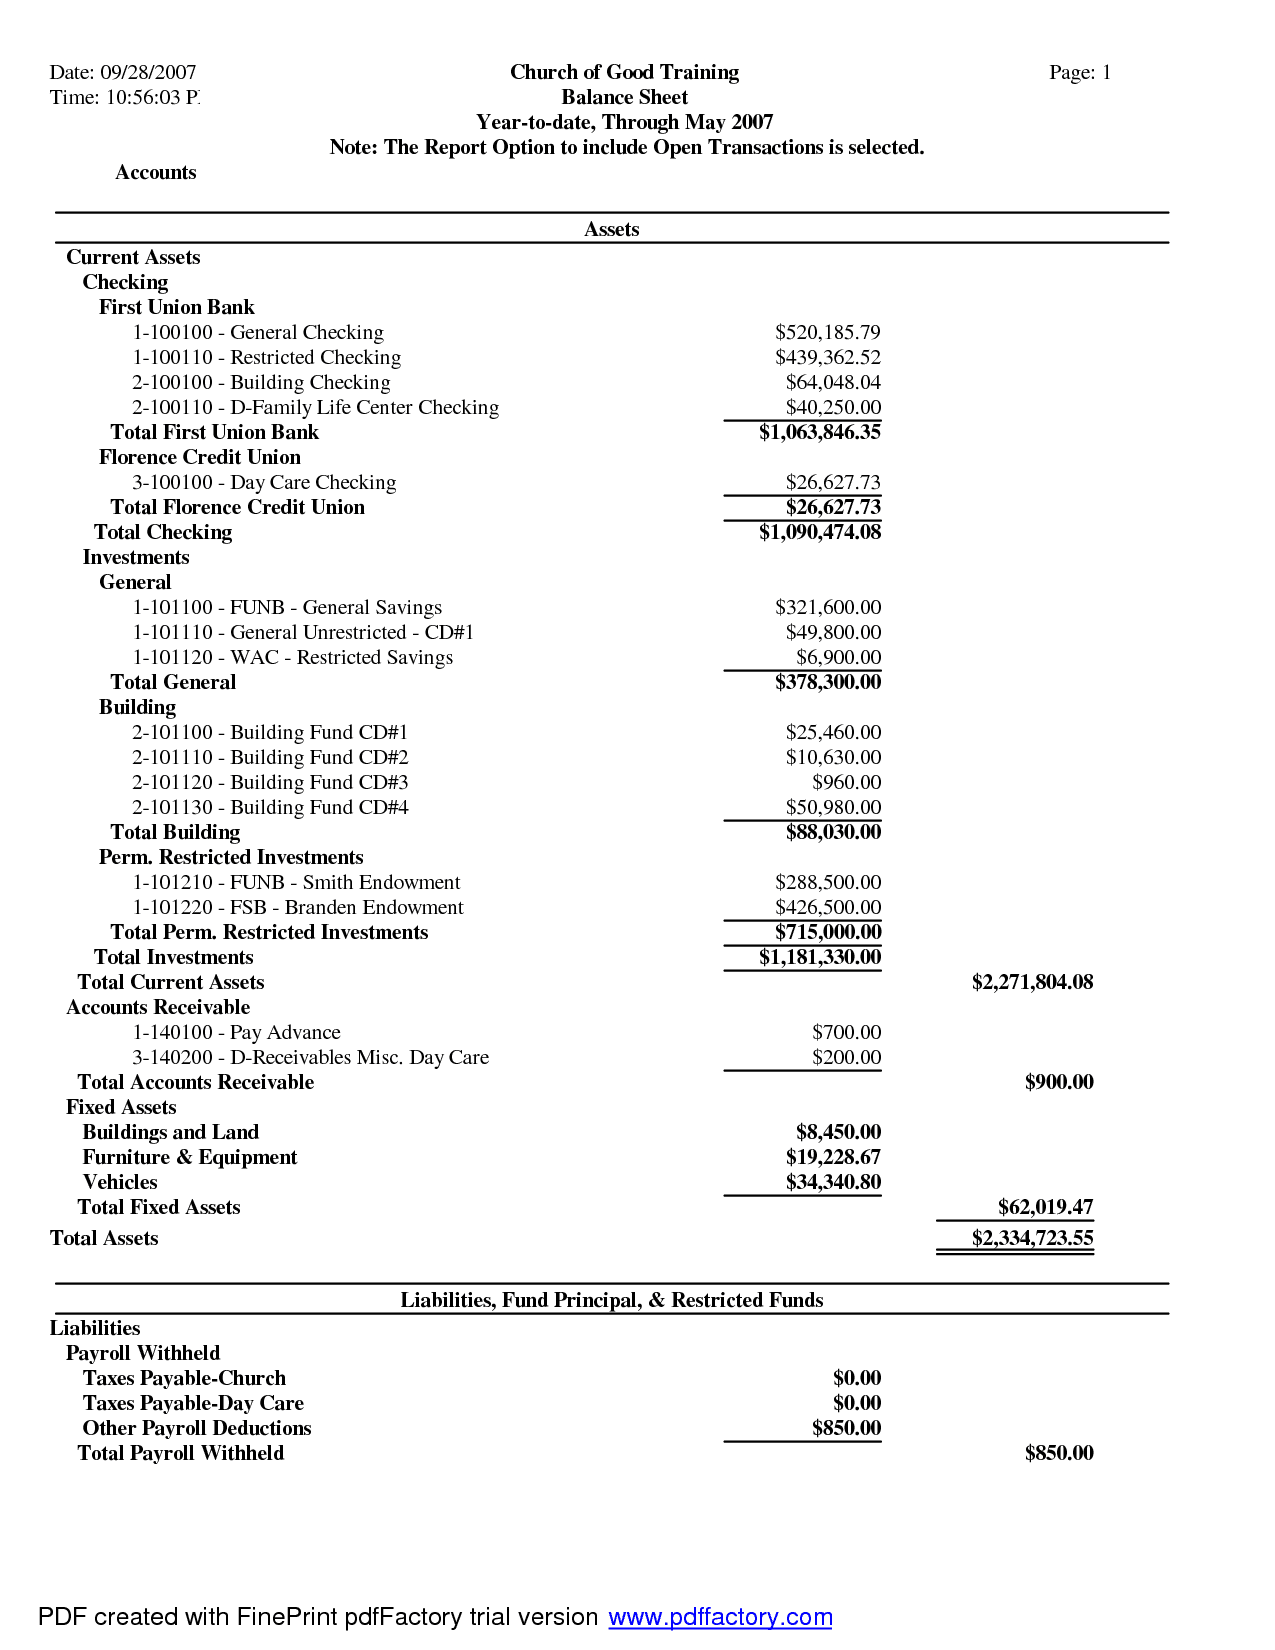 Free Church Balance Sheet Template And Church Financial Report Template Excel